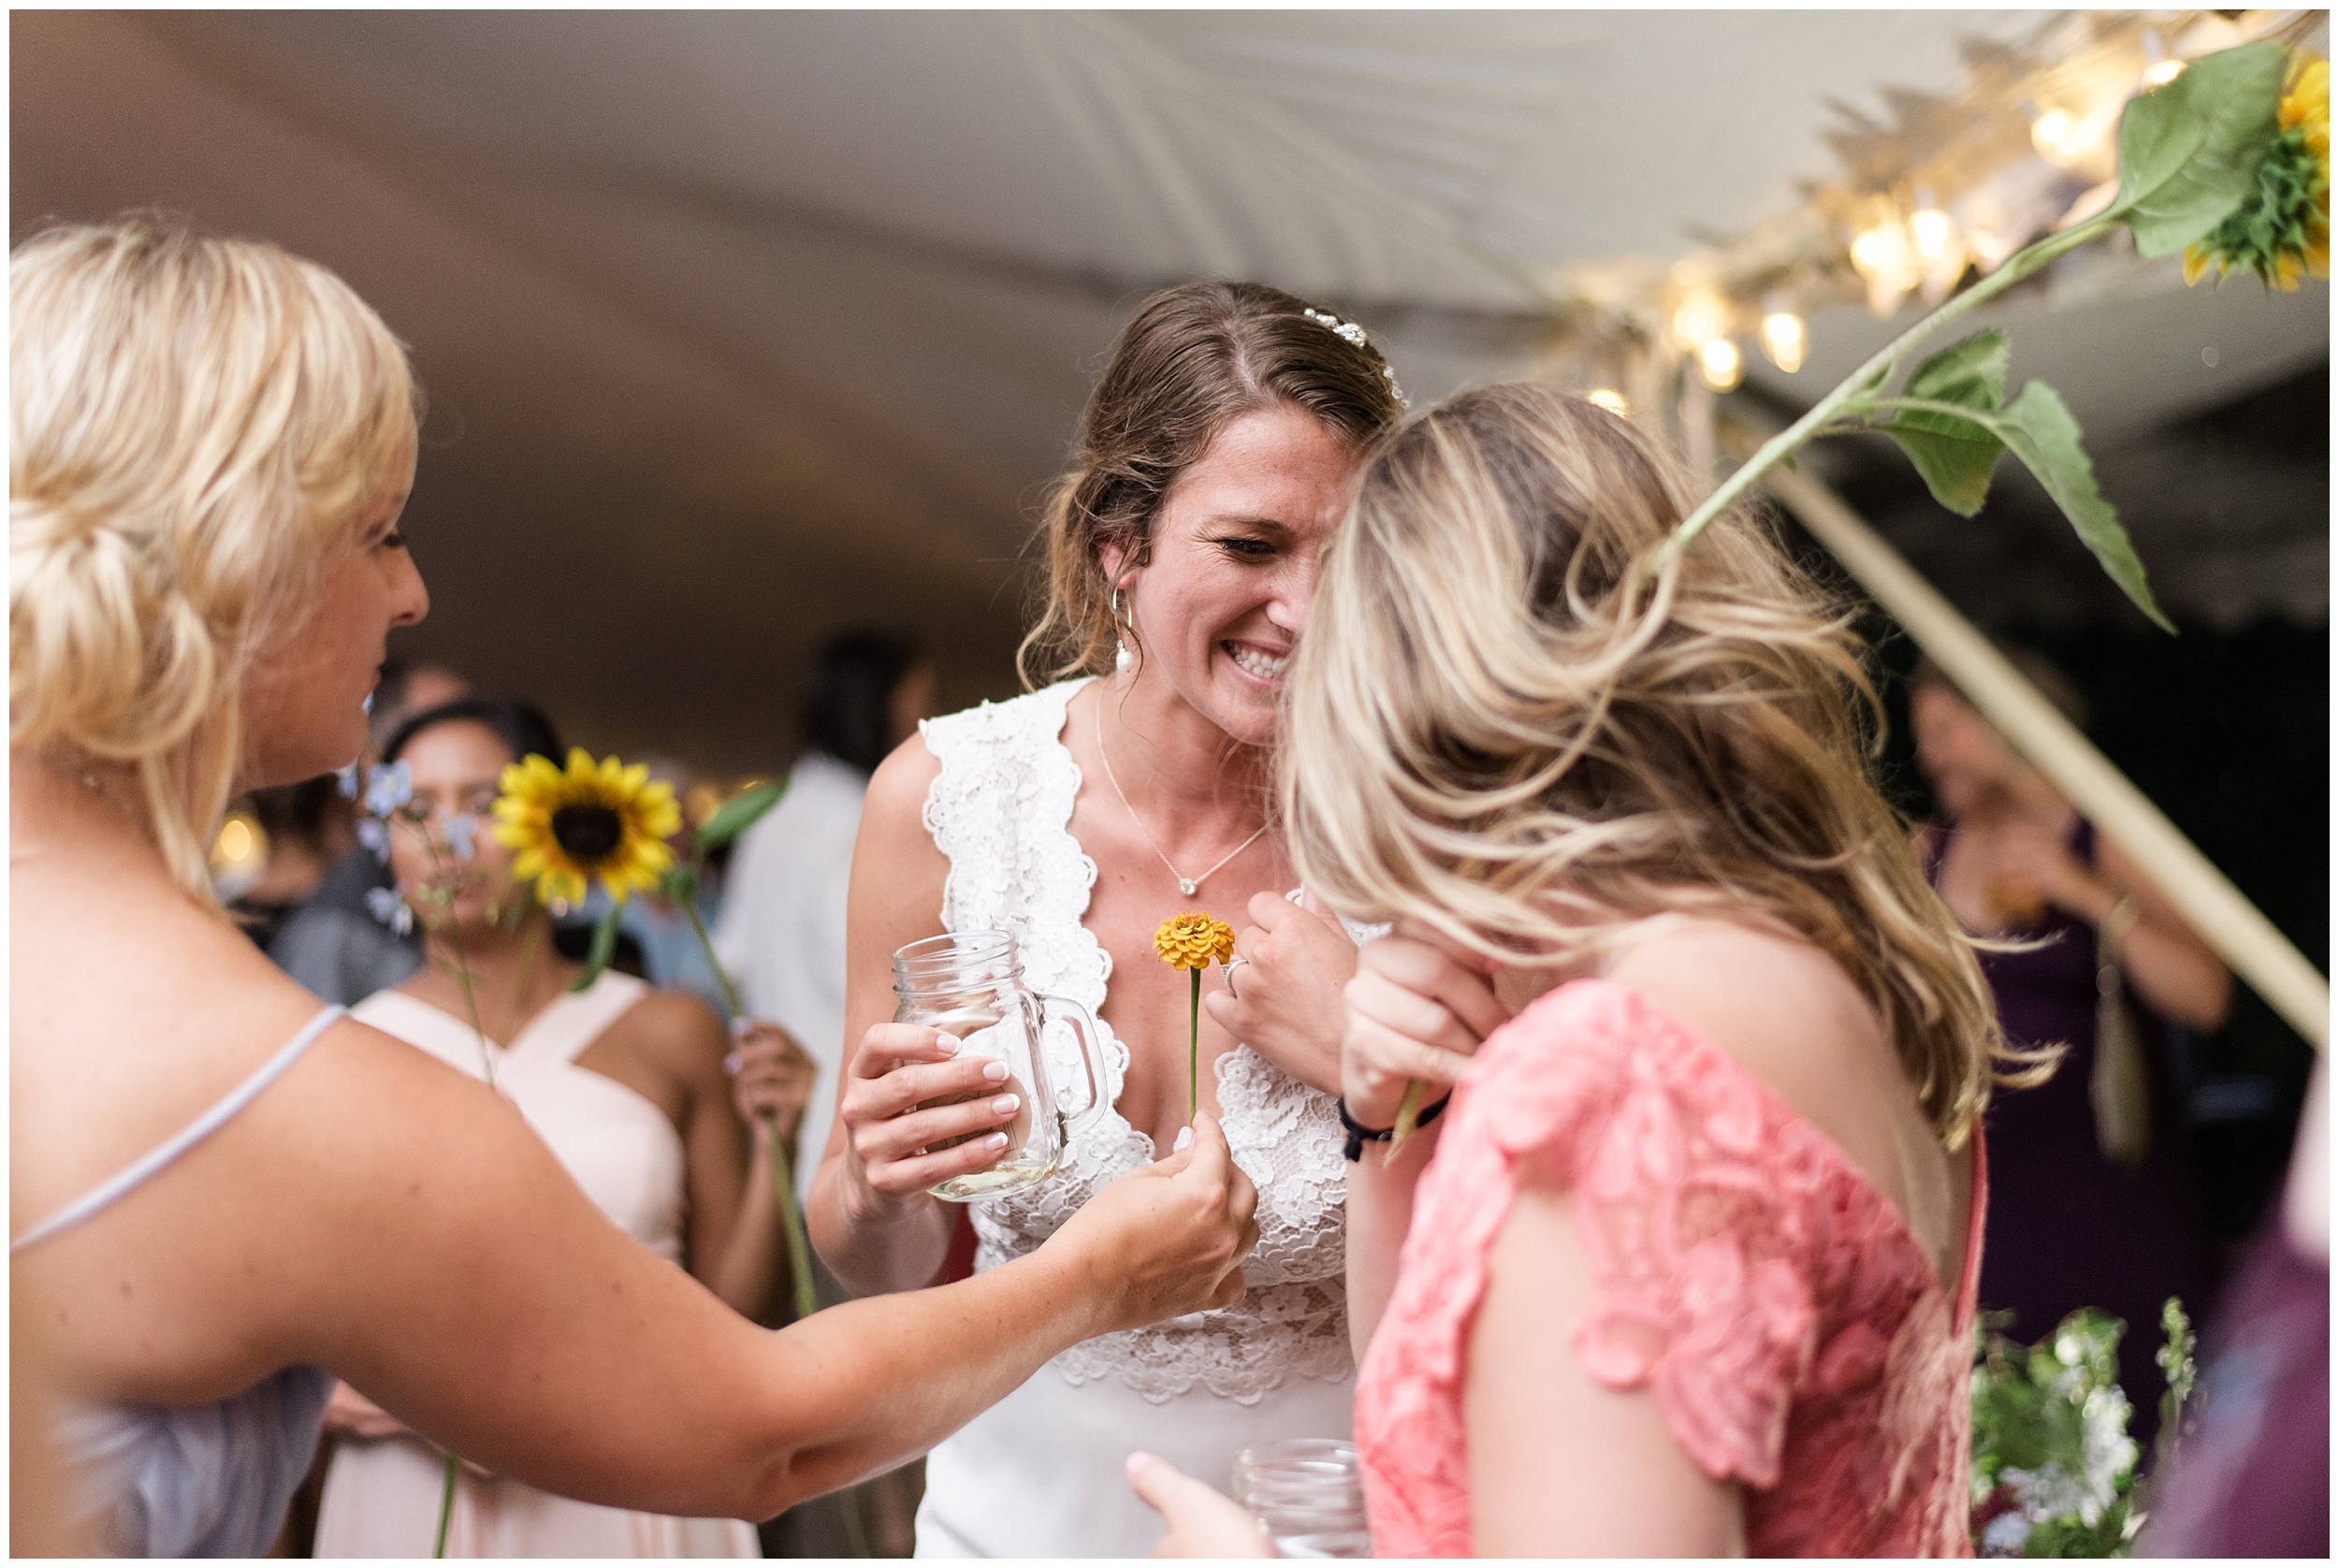 Whimsical-Ethereal-July-Kalamazoo-Wedding-Bright-Airy-Documentary-Milwaukee-Photographer_0103.jpg